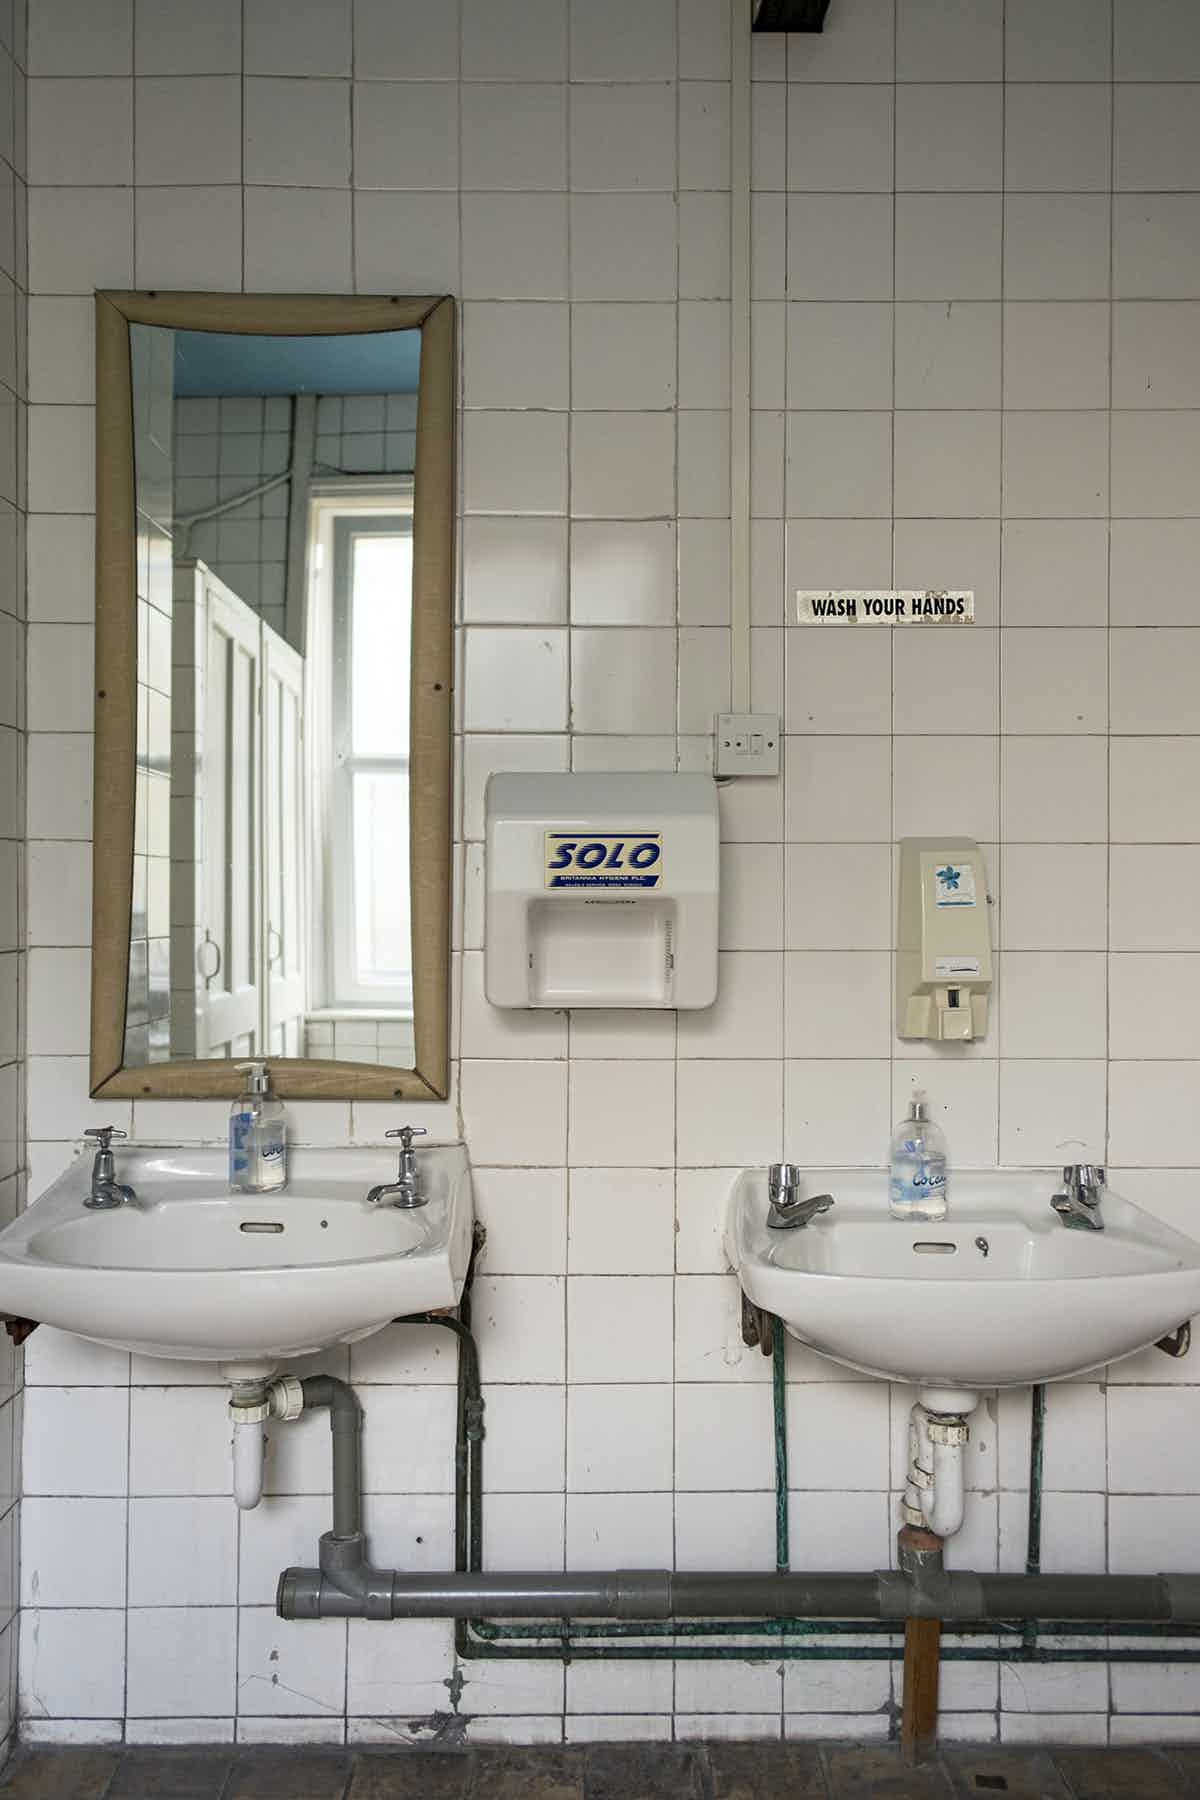 An image from Hand Dryers by Samuel Ryde